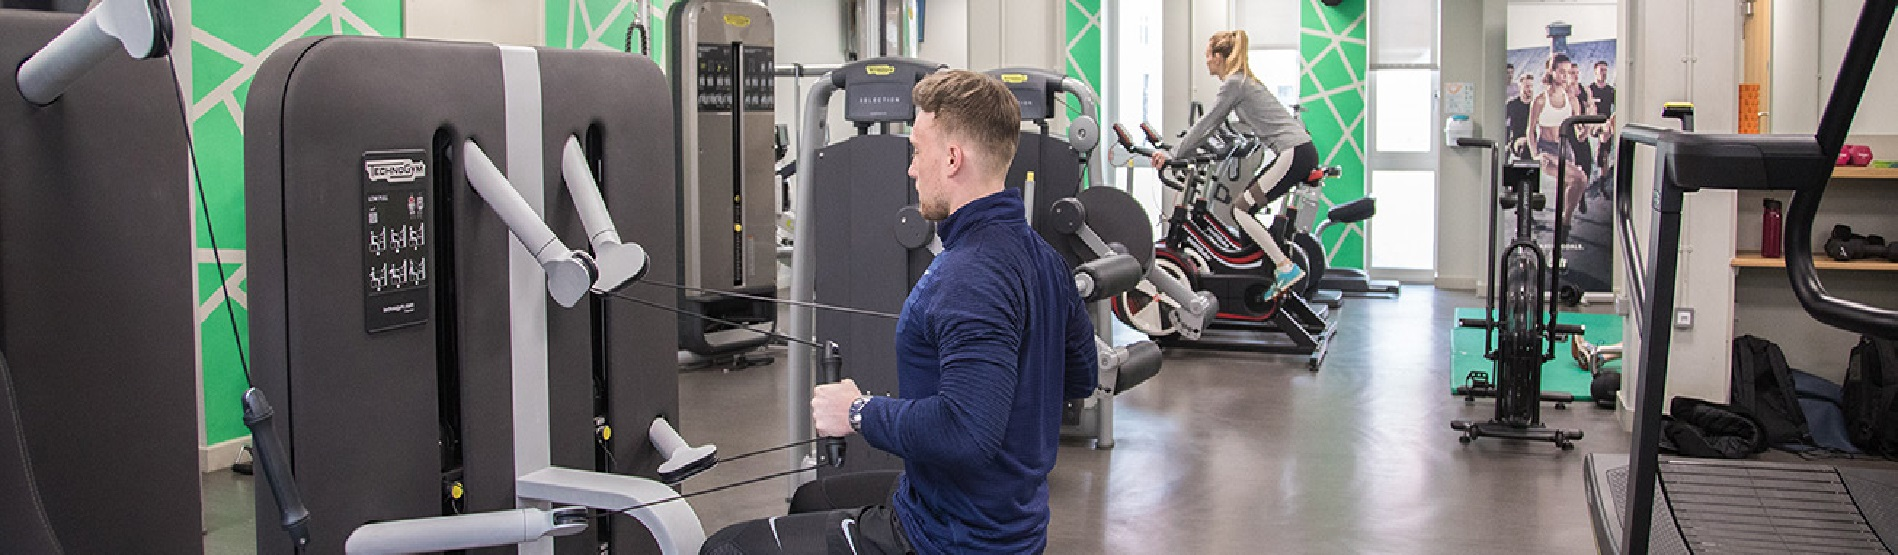 A man is exercising on a weights machine in the gym and a woman is on a bike in the background